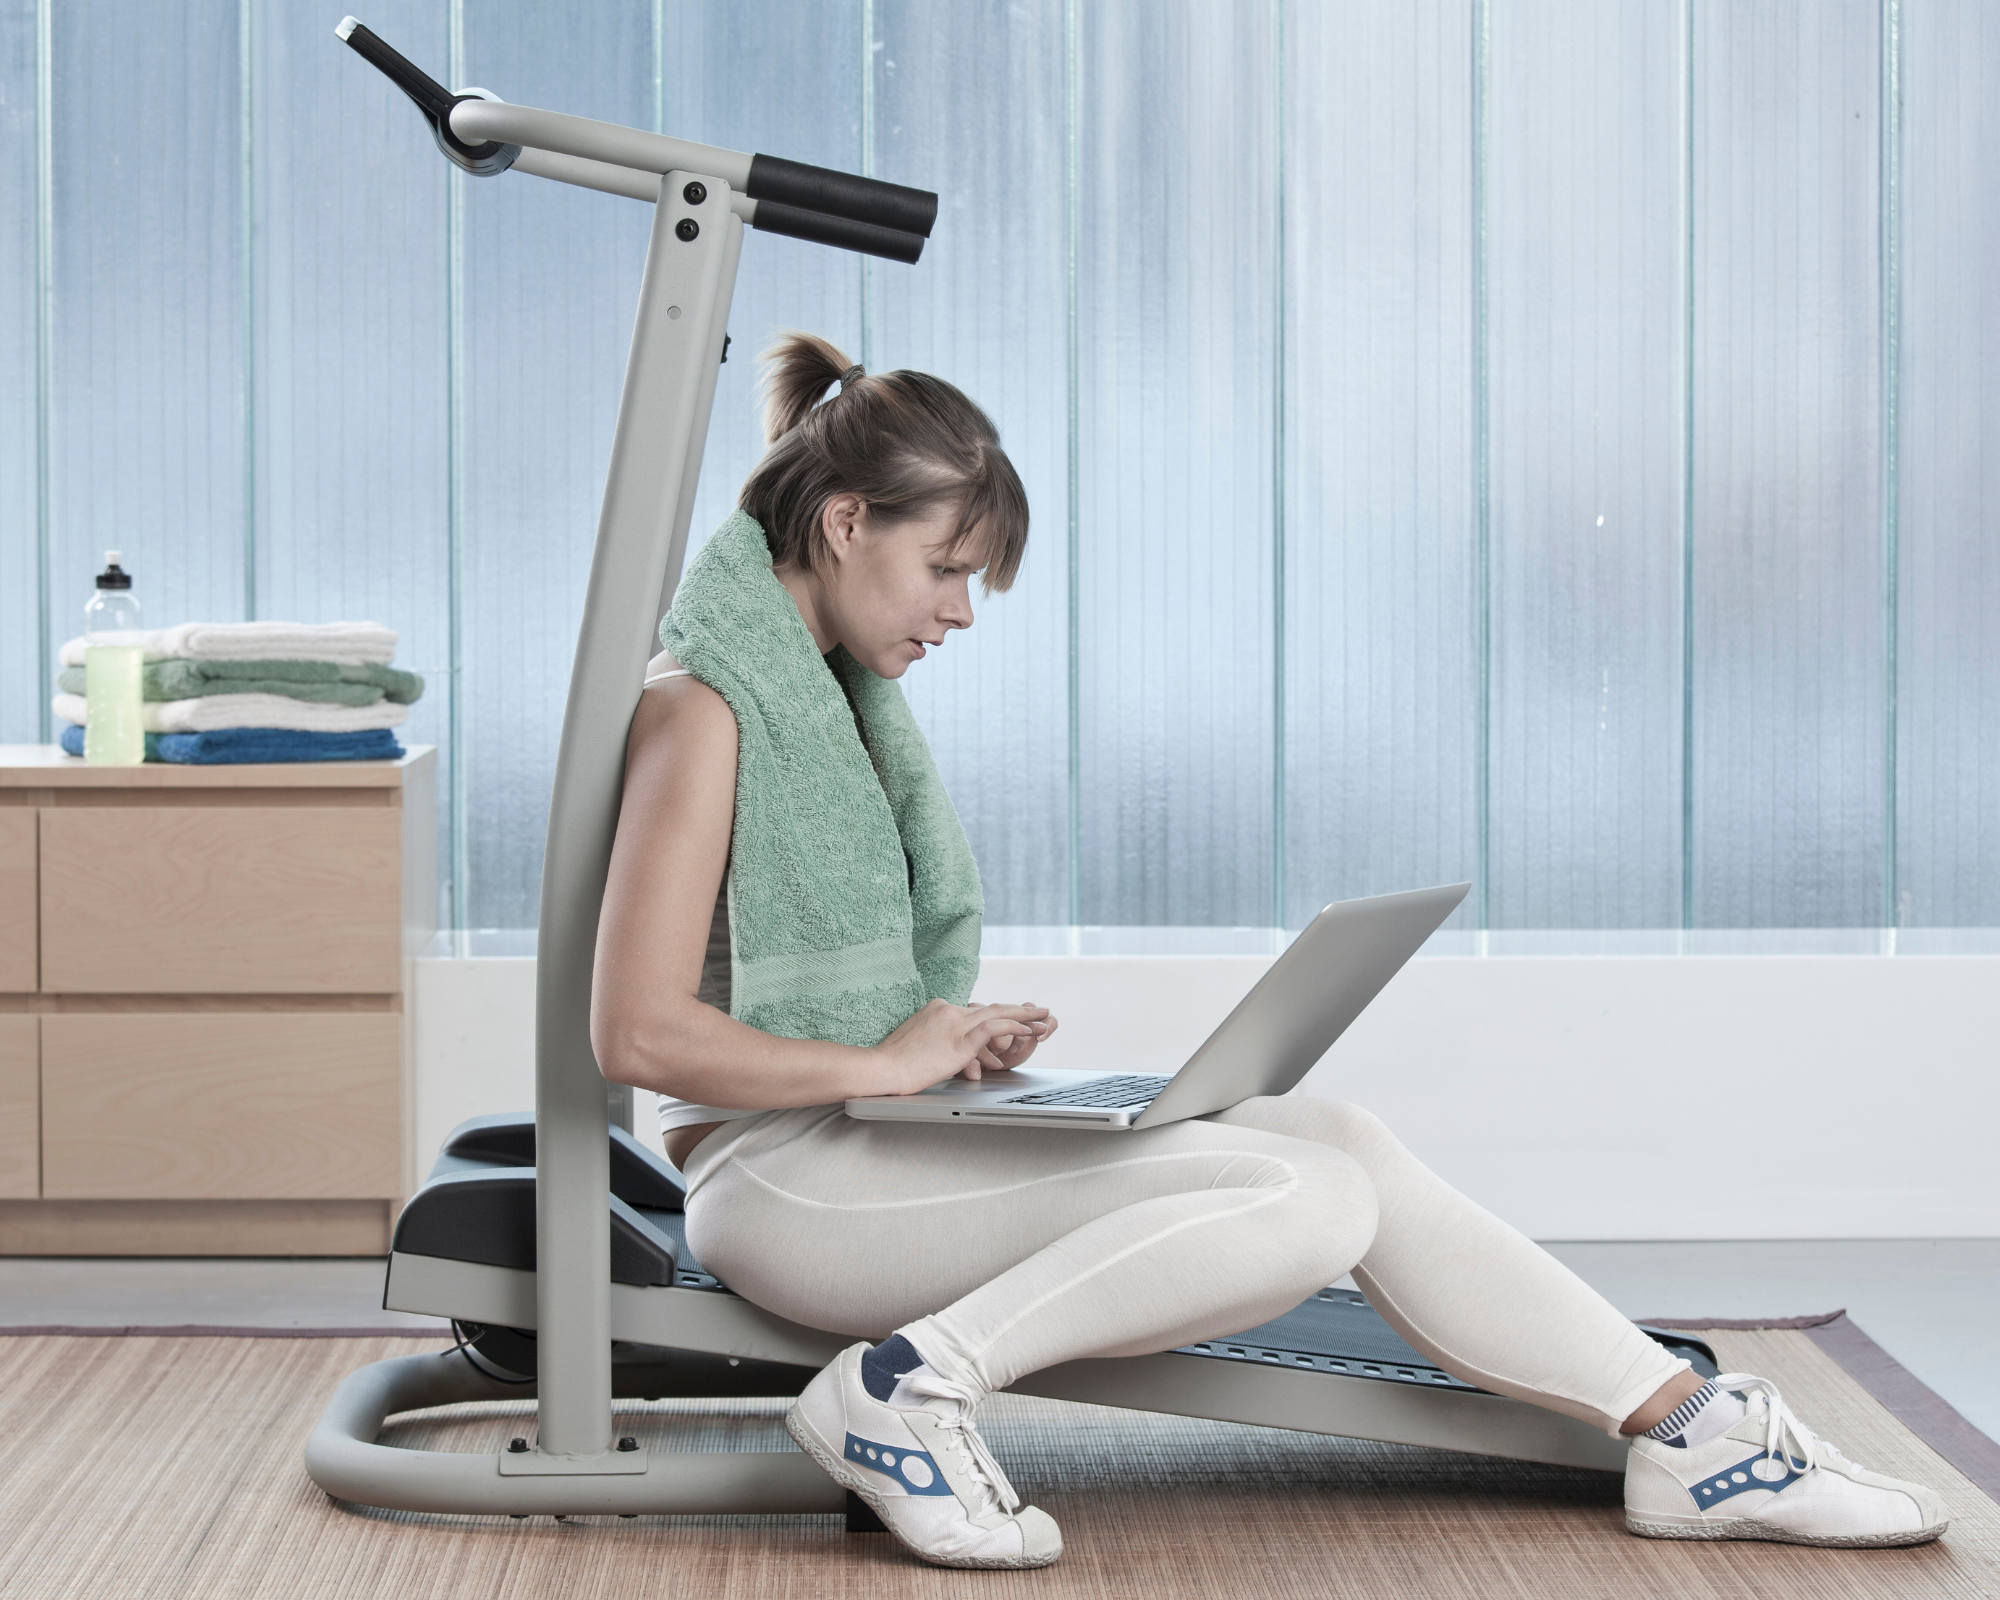 The Science Behind The 10-Minute Workout to Break Writer's Block